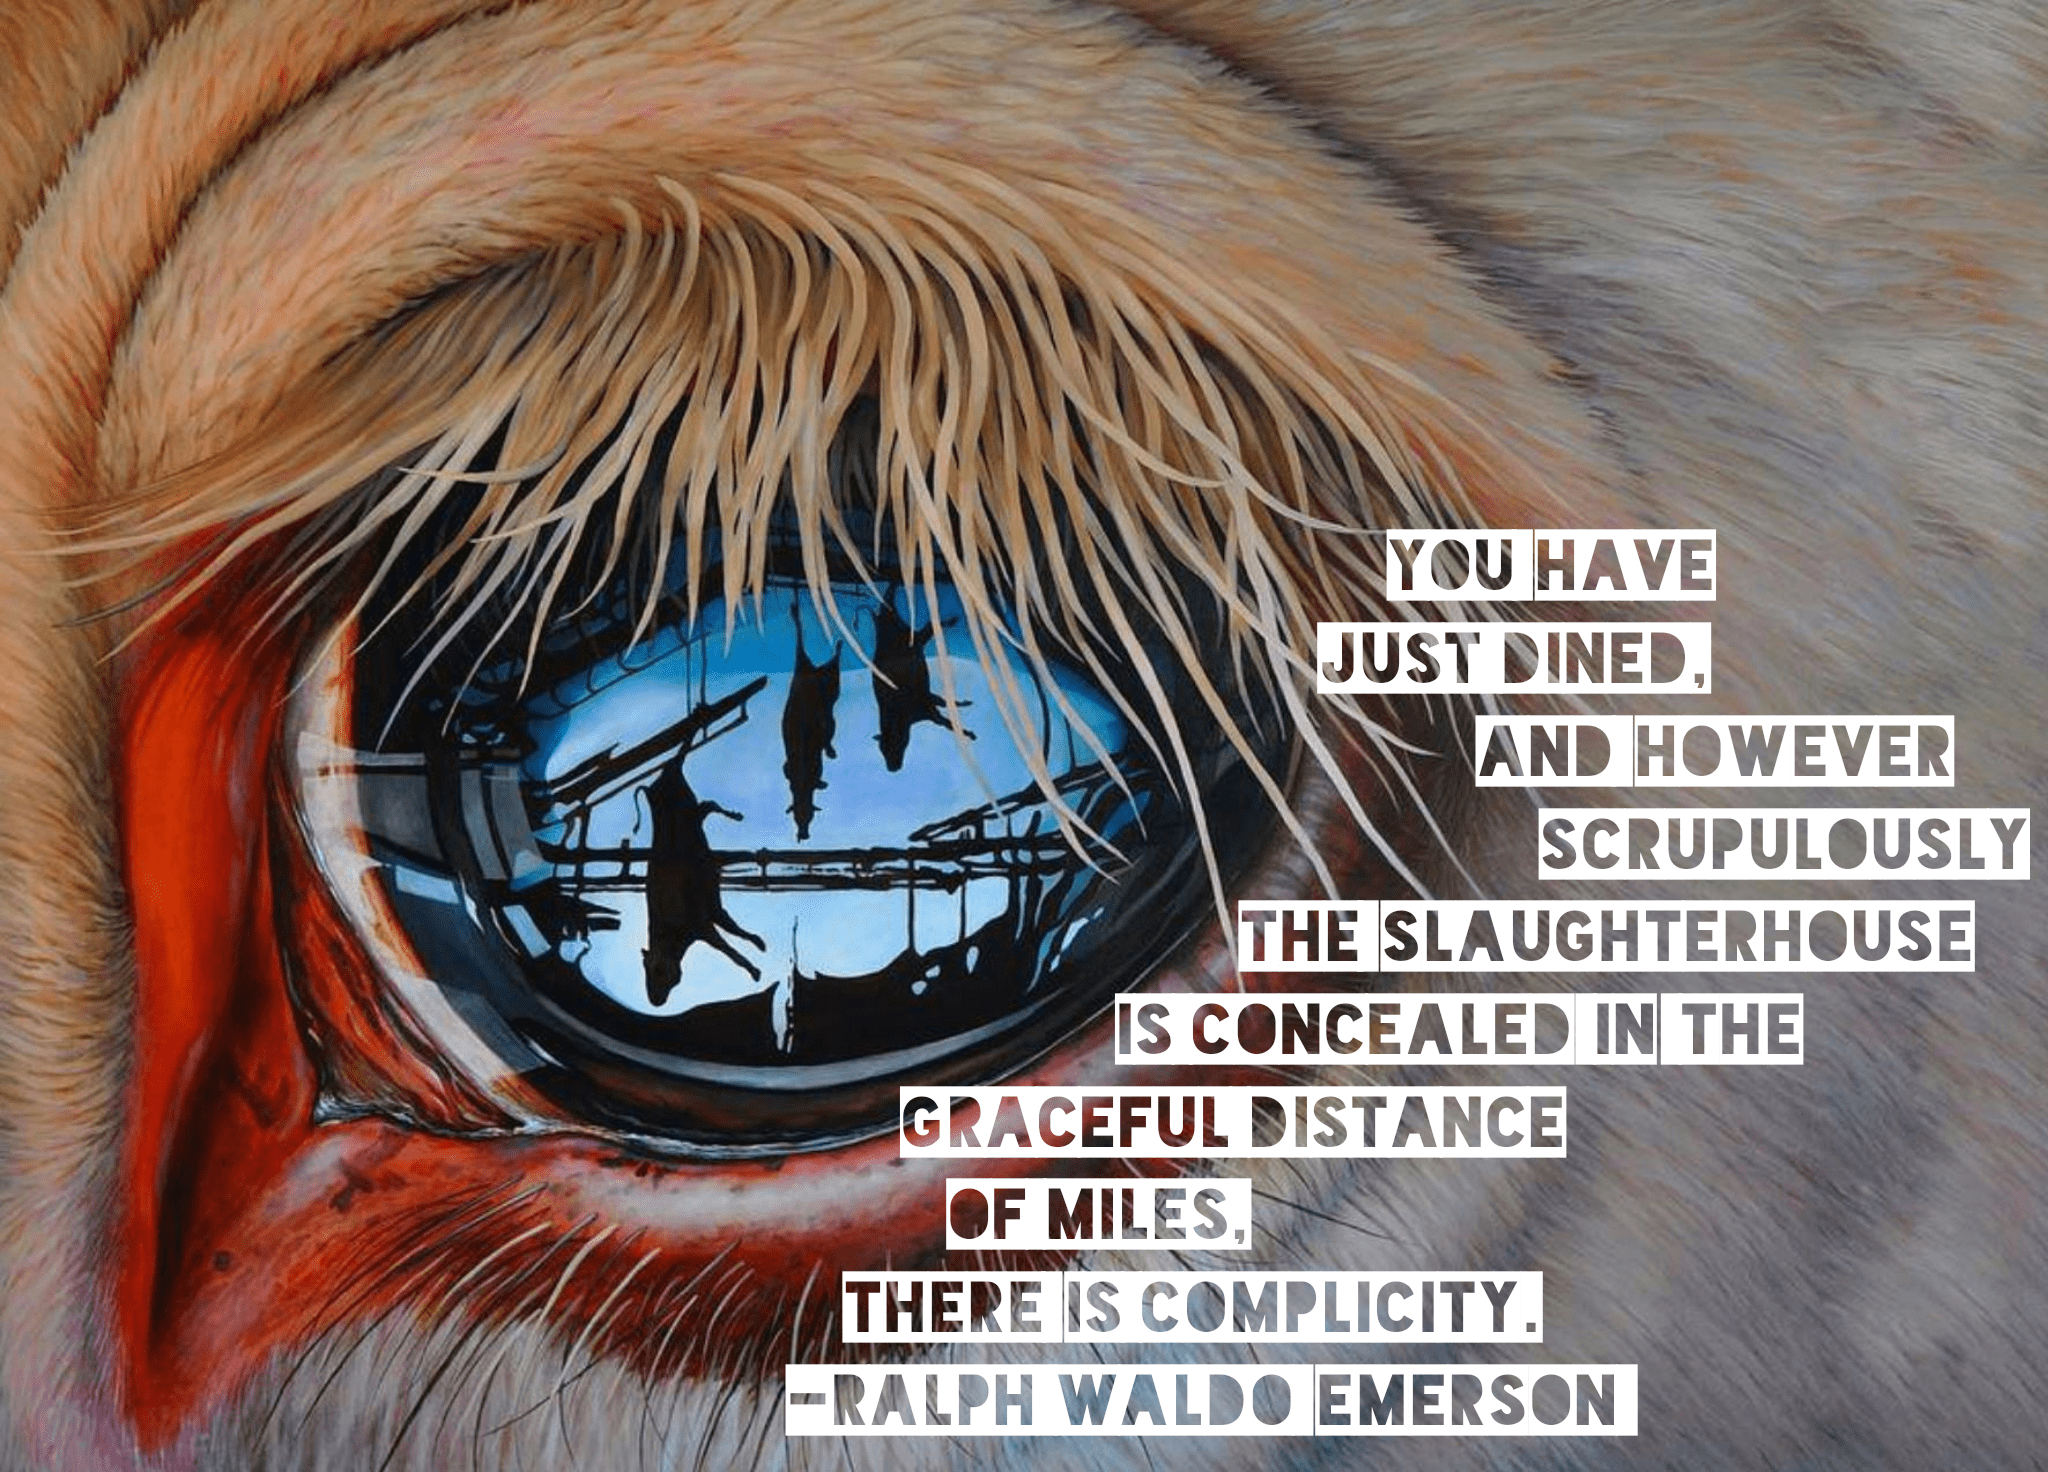 """You have just dined, and however scrupulously the slaughterhouse is concealed in the graceful distance of miles, there is complicity."" -Ralph Waldo Emerson [2048×1472]"